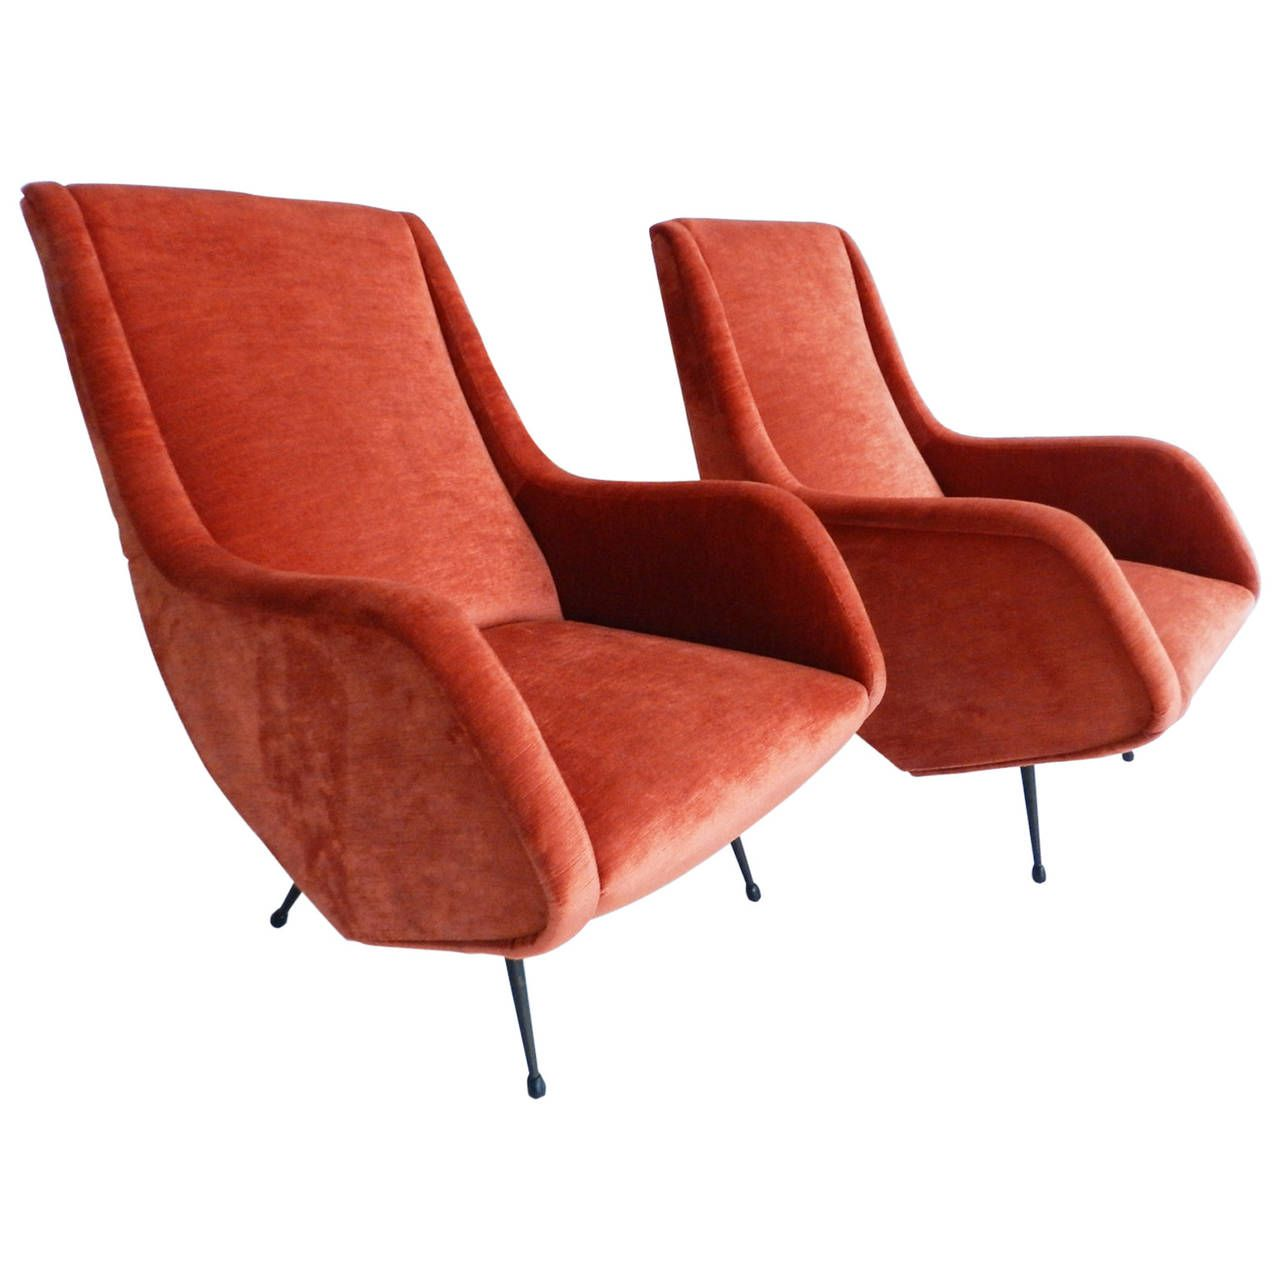 Delicieux Two Armchairs Designed By Aldo Morbelli, Edited By ISA Italy, 1950s | From  A Unique Collection Of Antique And Modern Lounge Chairs At ...